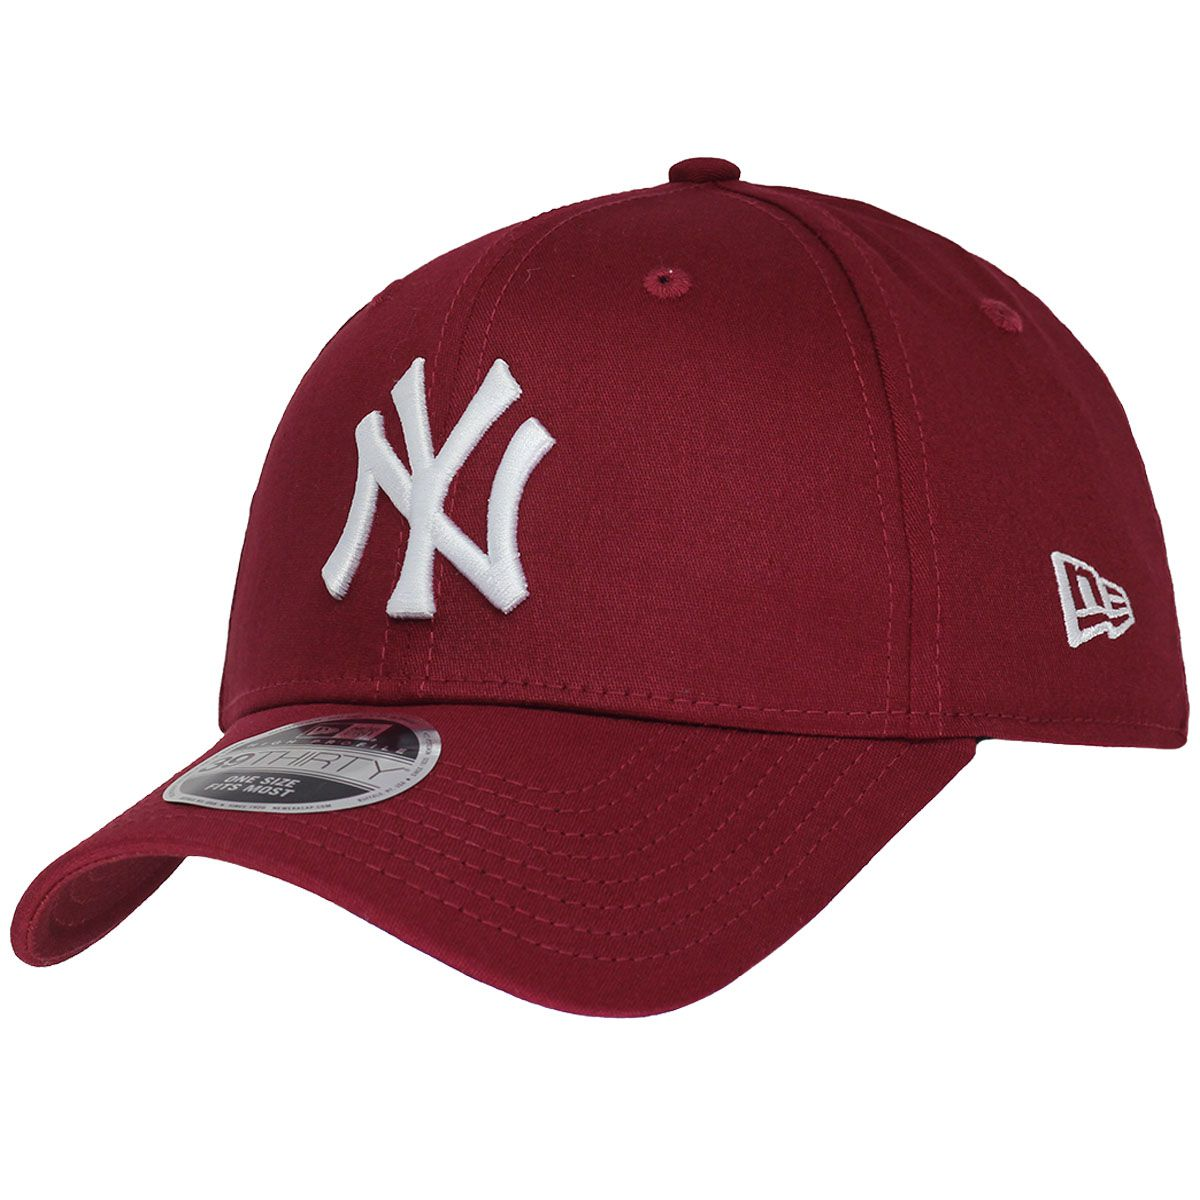 Boné New Era Aba Curva 3930 MLB NY Yankees Colors Vinho